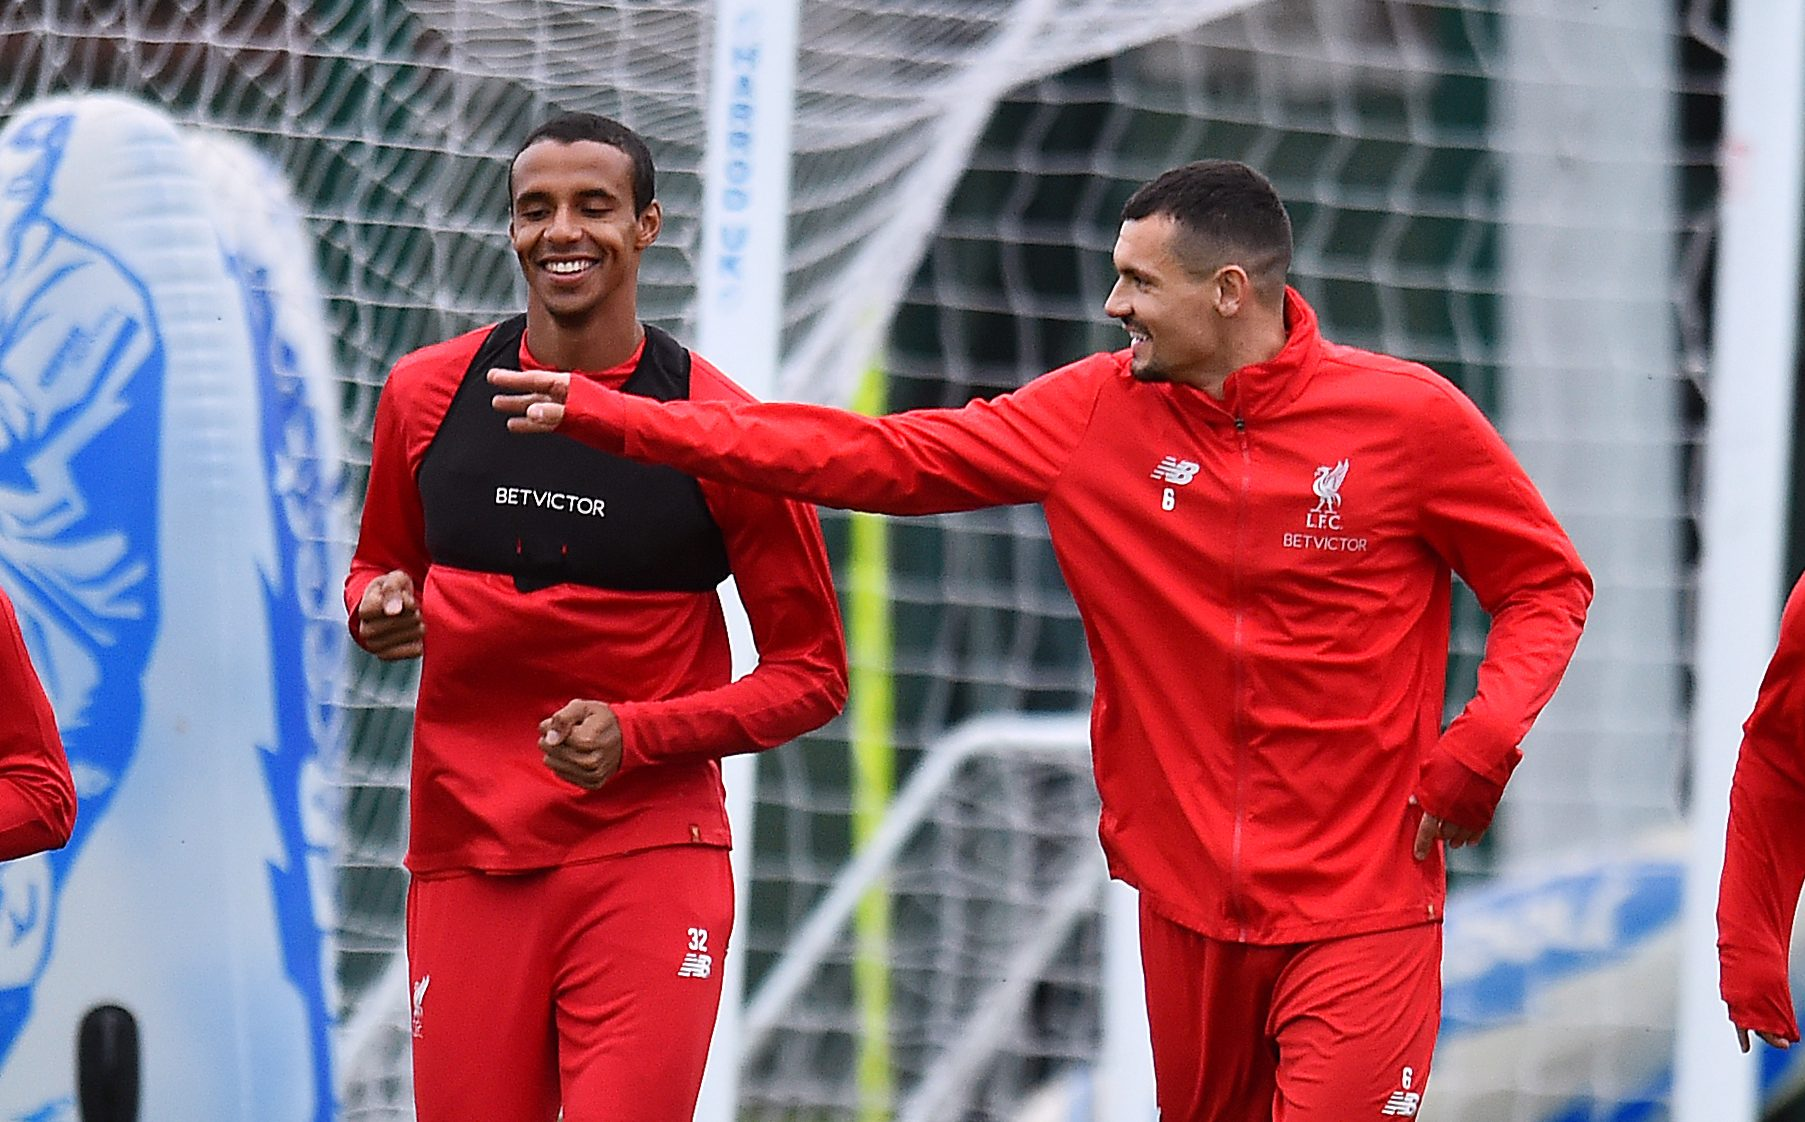 Jurgen Klopp provides Joel Matip and Dejan Lovren injury updates ahead of Brighton clash